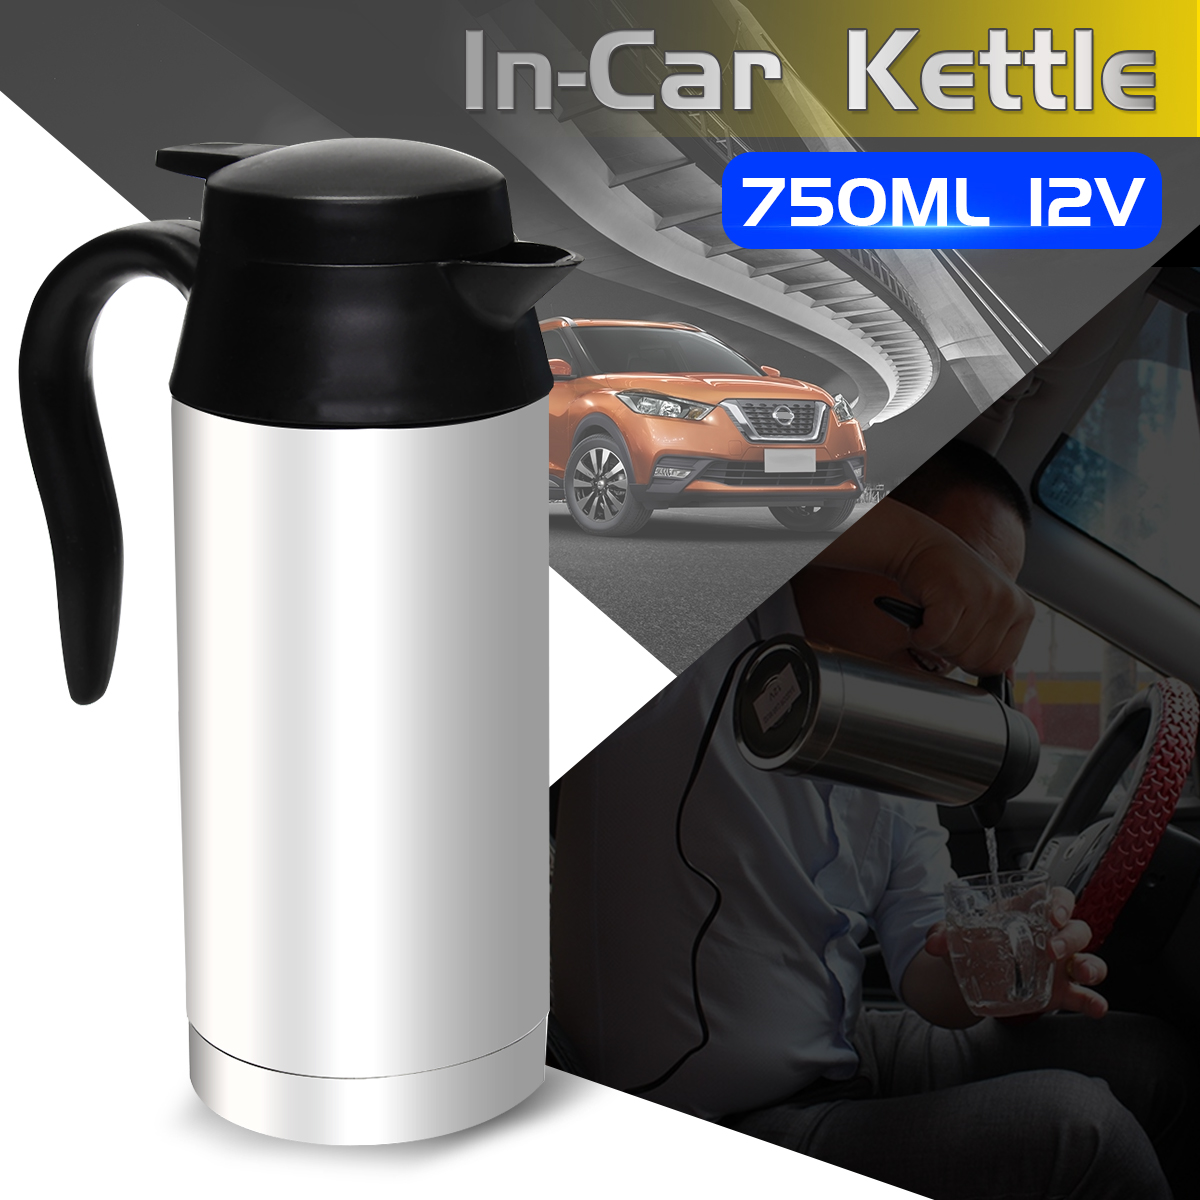 750ml 12V Car Based Heating Stainless Steel Cup Kettle Travel Trip Coffee Tea Heated Mug Motor Hot Water For Car Or Truck Use automatic mixing cup camera lens stainless steel coffee tea mug travel